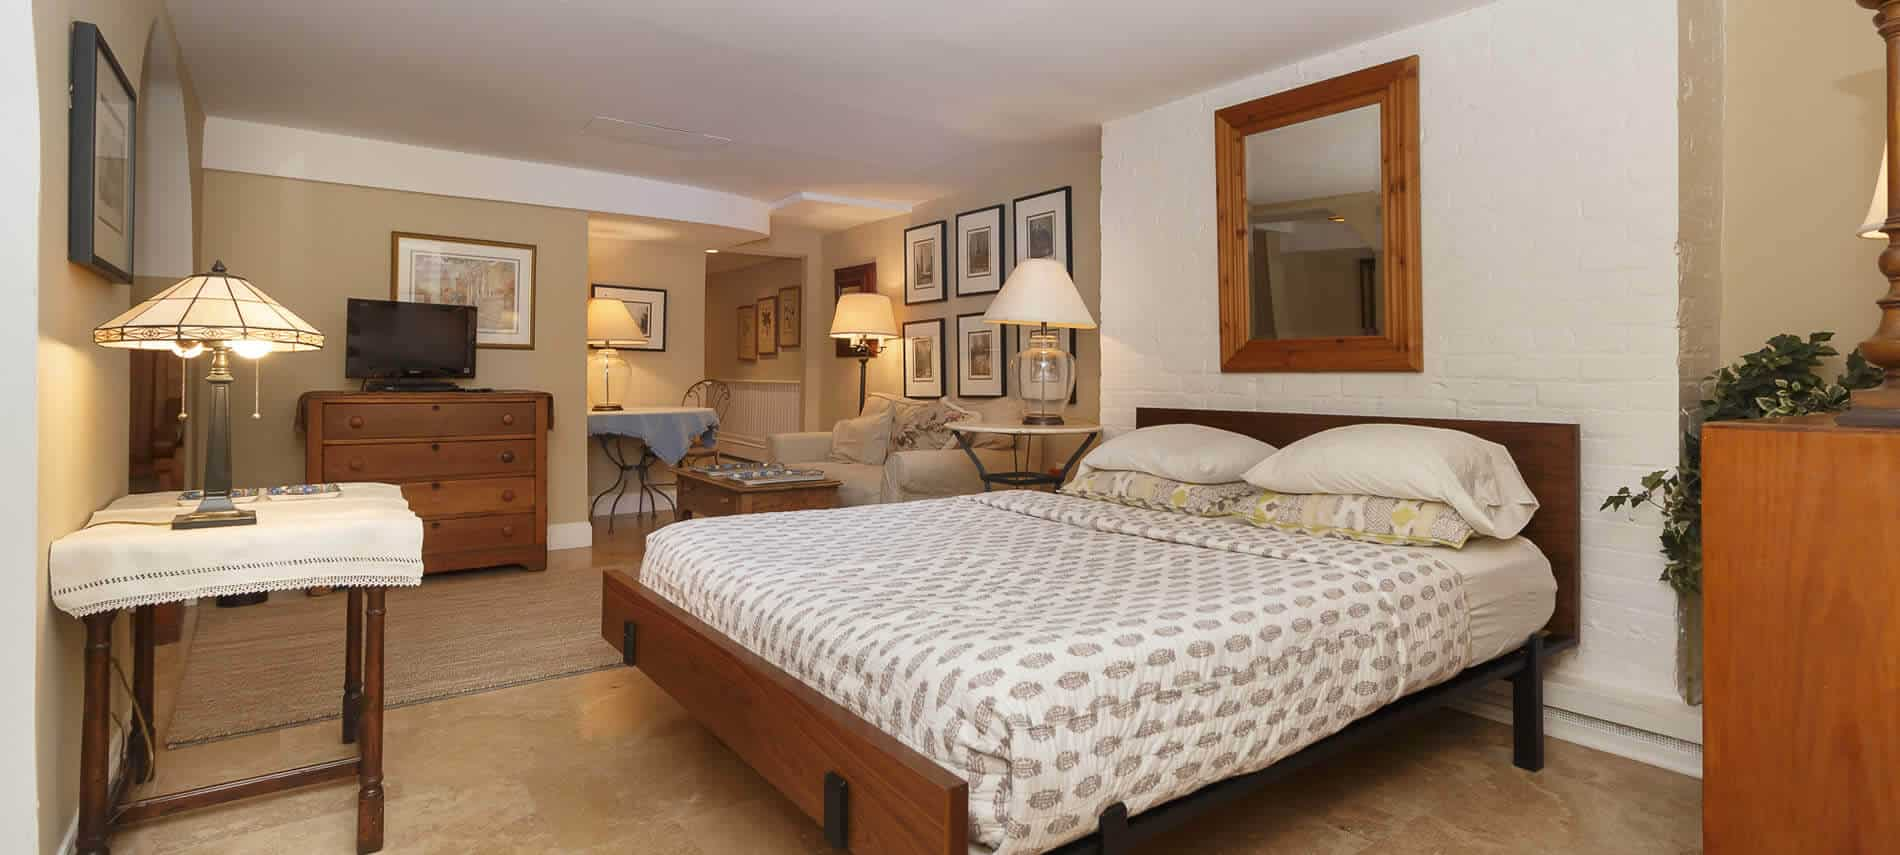 A large beige & cream bedroom filled with a king platform bed, wooden dresser & tv, & side tables with lamps